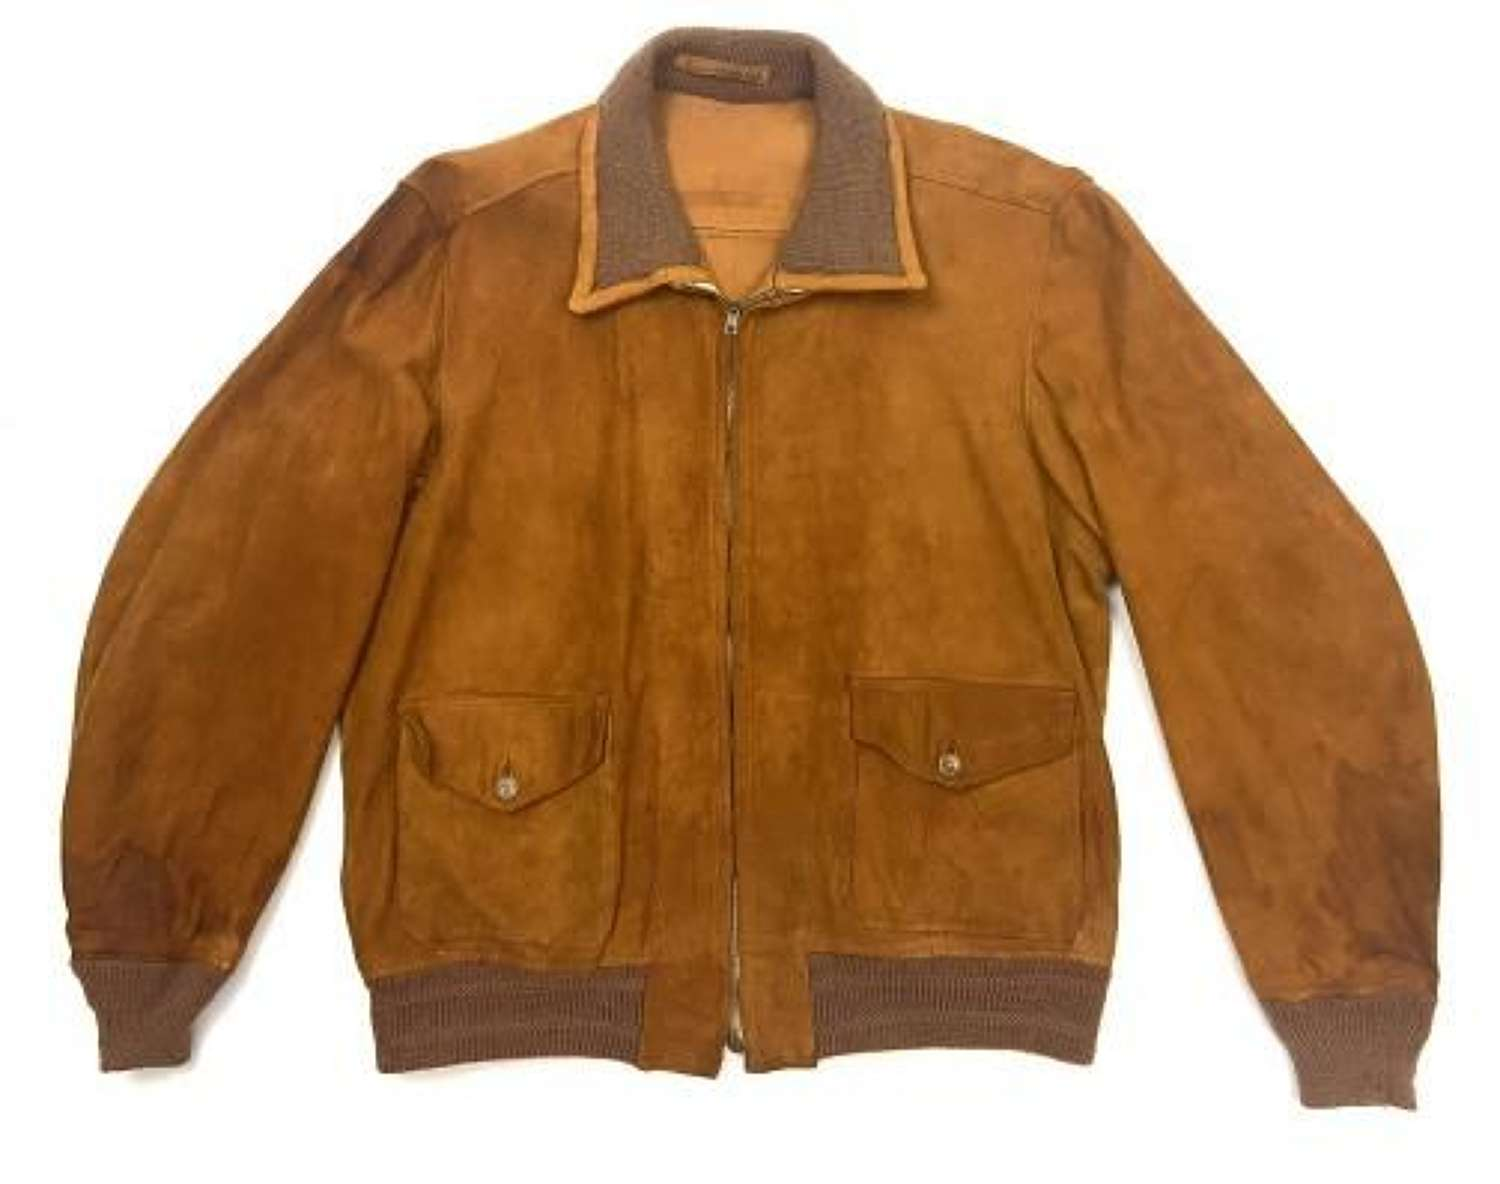 Rare original 1930 Dated Men's Suede Zip Sports Jacket